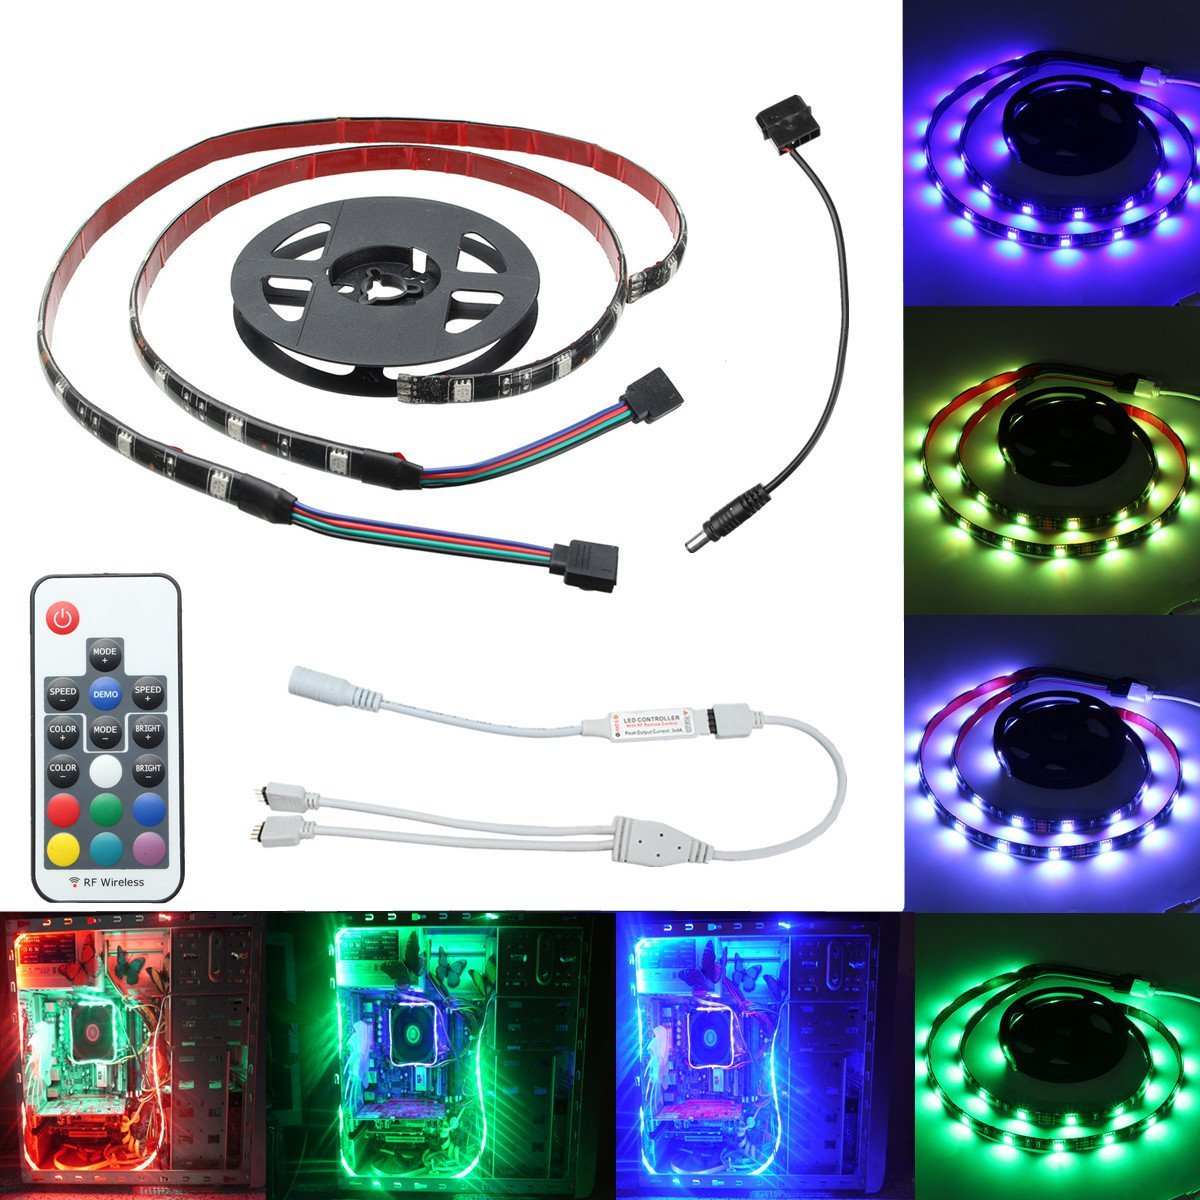 2pcs 50cm 5050 Smd 17 Keys Remote Control Led Strip Lighting For Rgb Controller Strips With Rf 20 Home Decoration